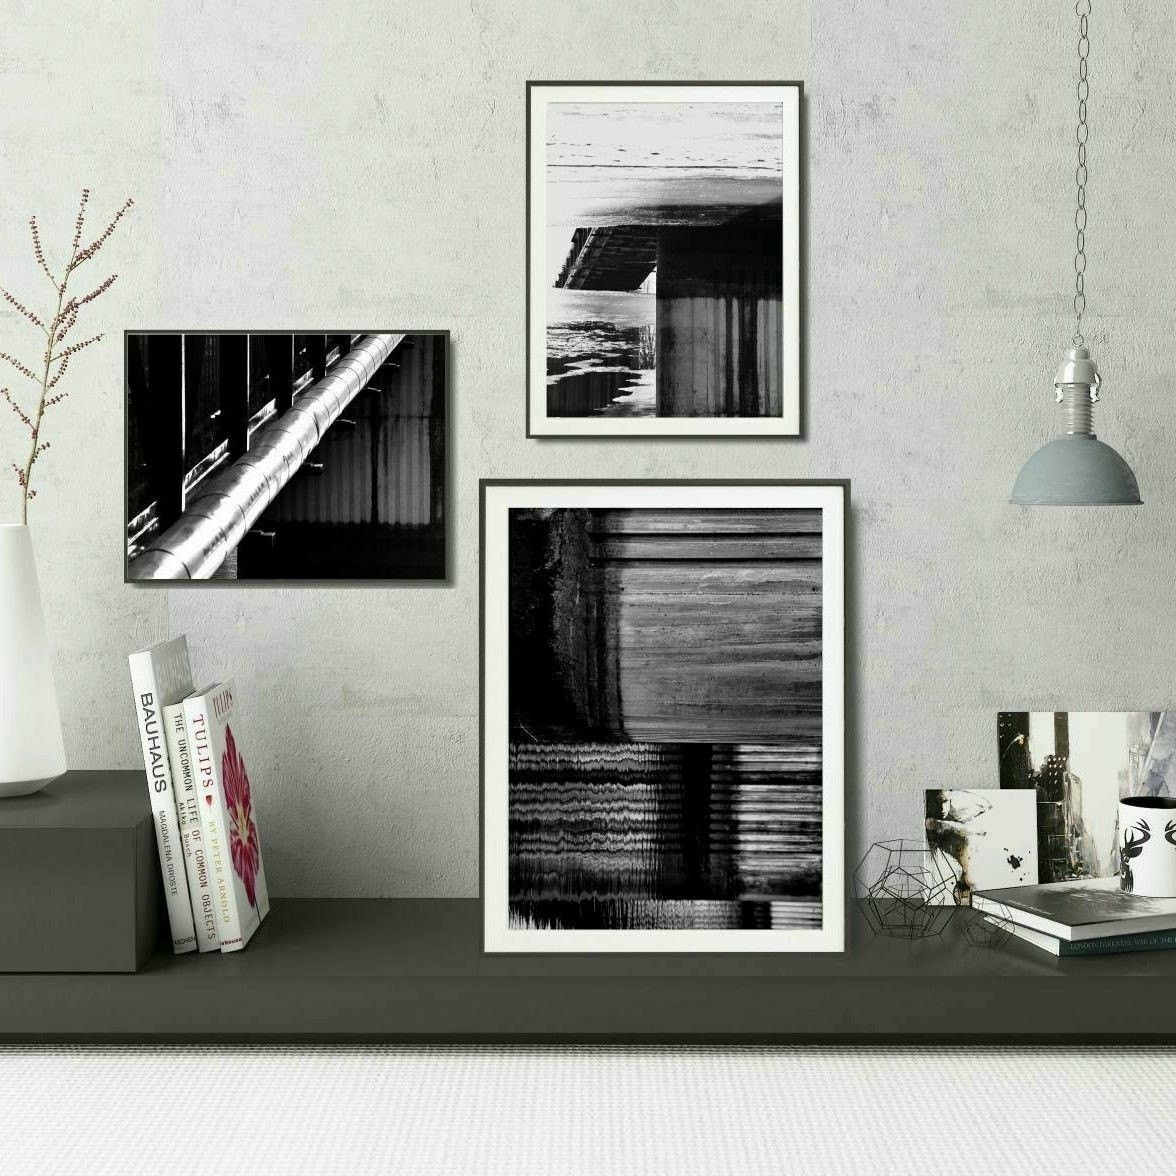 Try modern black and white photo decor set inspired by architecture available as instant download visit black and white prints section